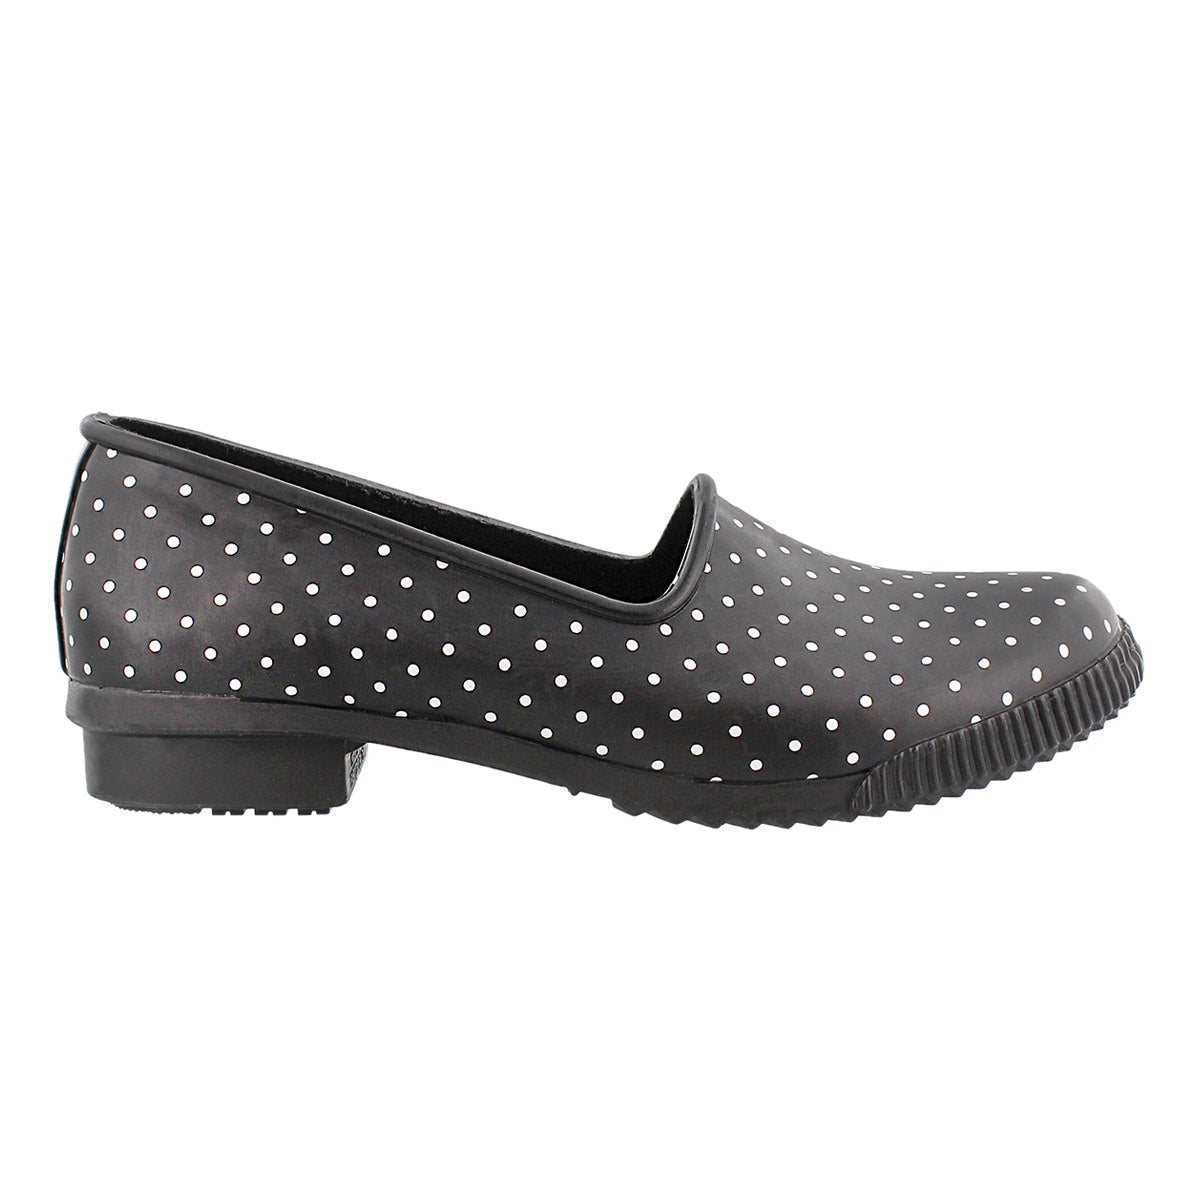 Lds Ruby blk polka dot rubber loafer